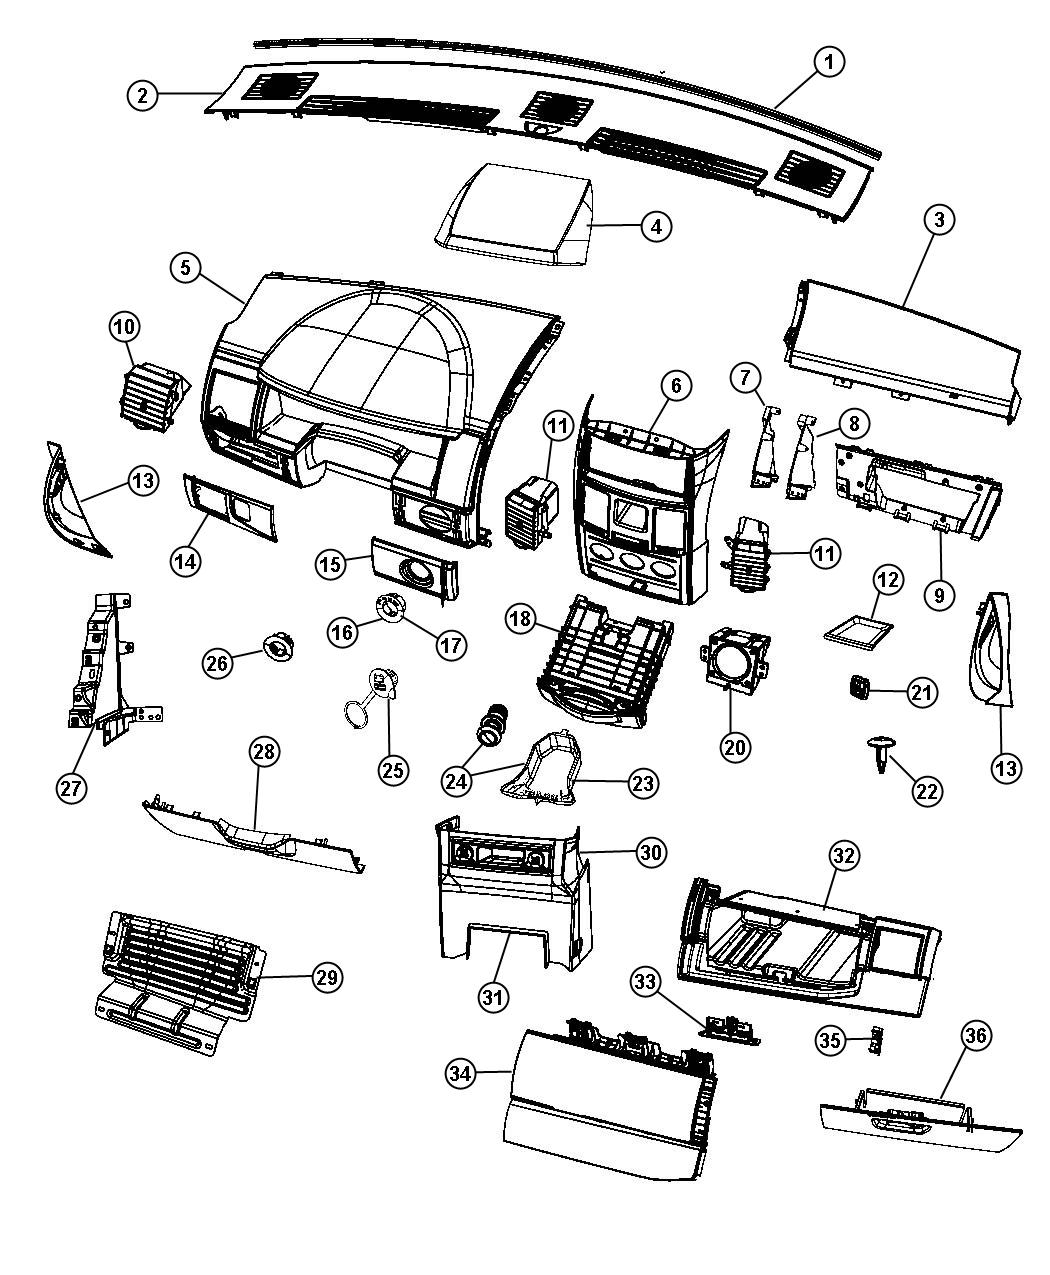 29 Dodge Grand Caravan Parts Diagram